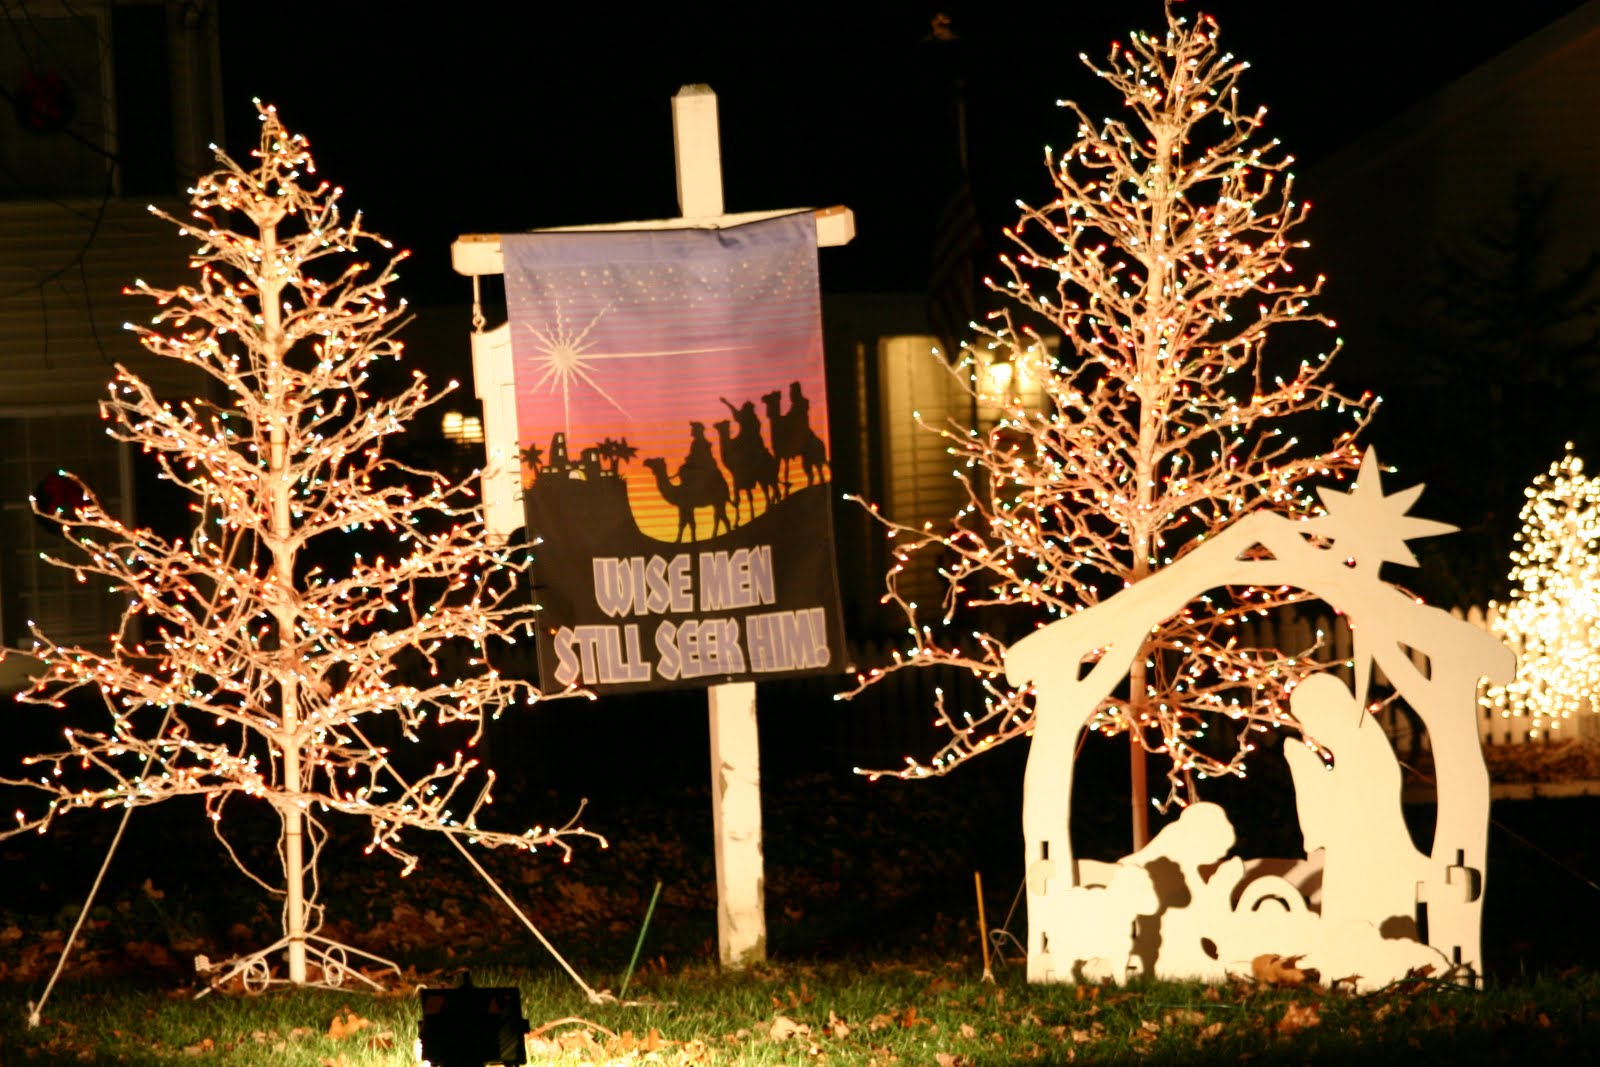 Indiana spencer county rockport - Families Can Drive Through The 1 2 Mile Santa Claus Land Of Lights Family Christmas Light Adventure At Lake Rudolph The Light Displays Tell The Shining